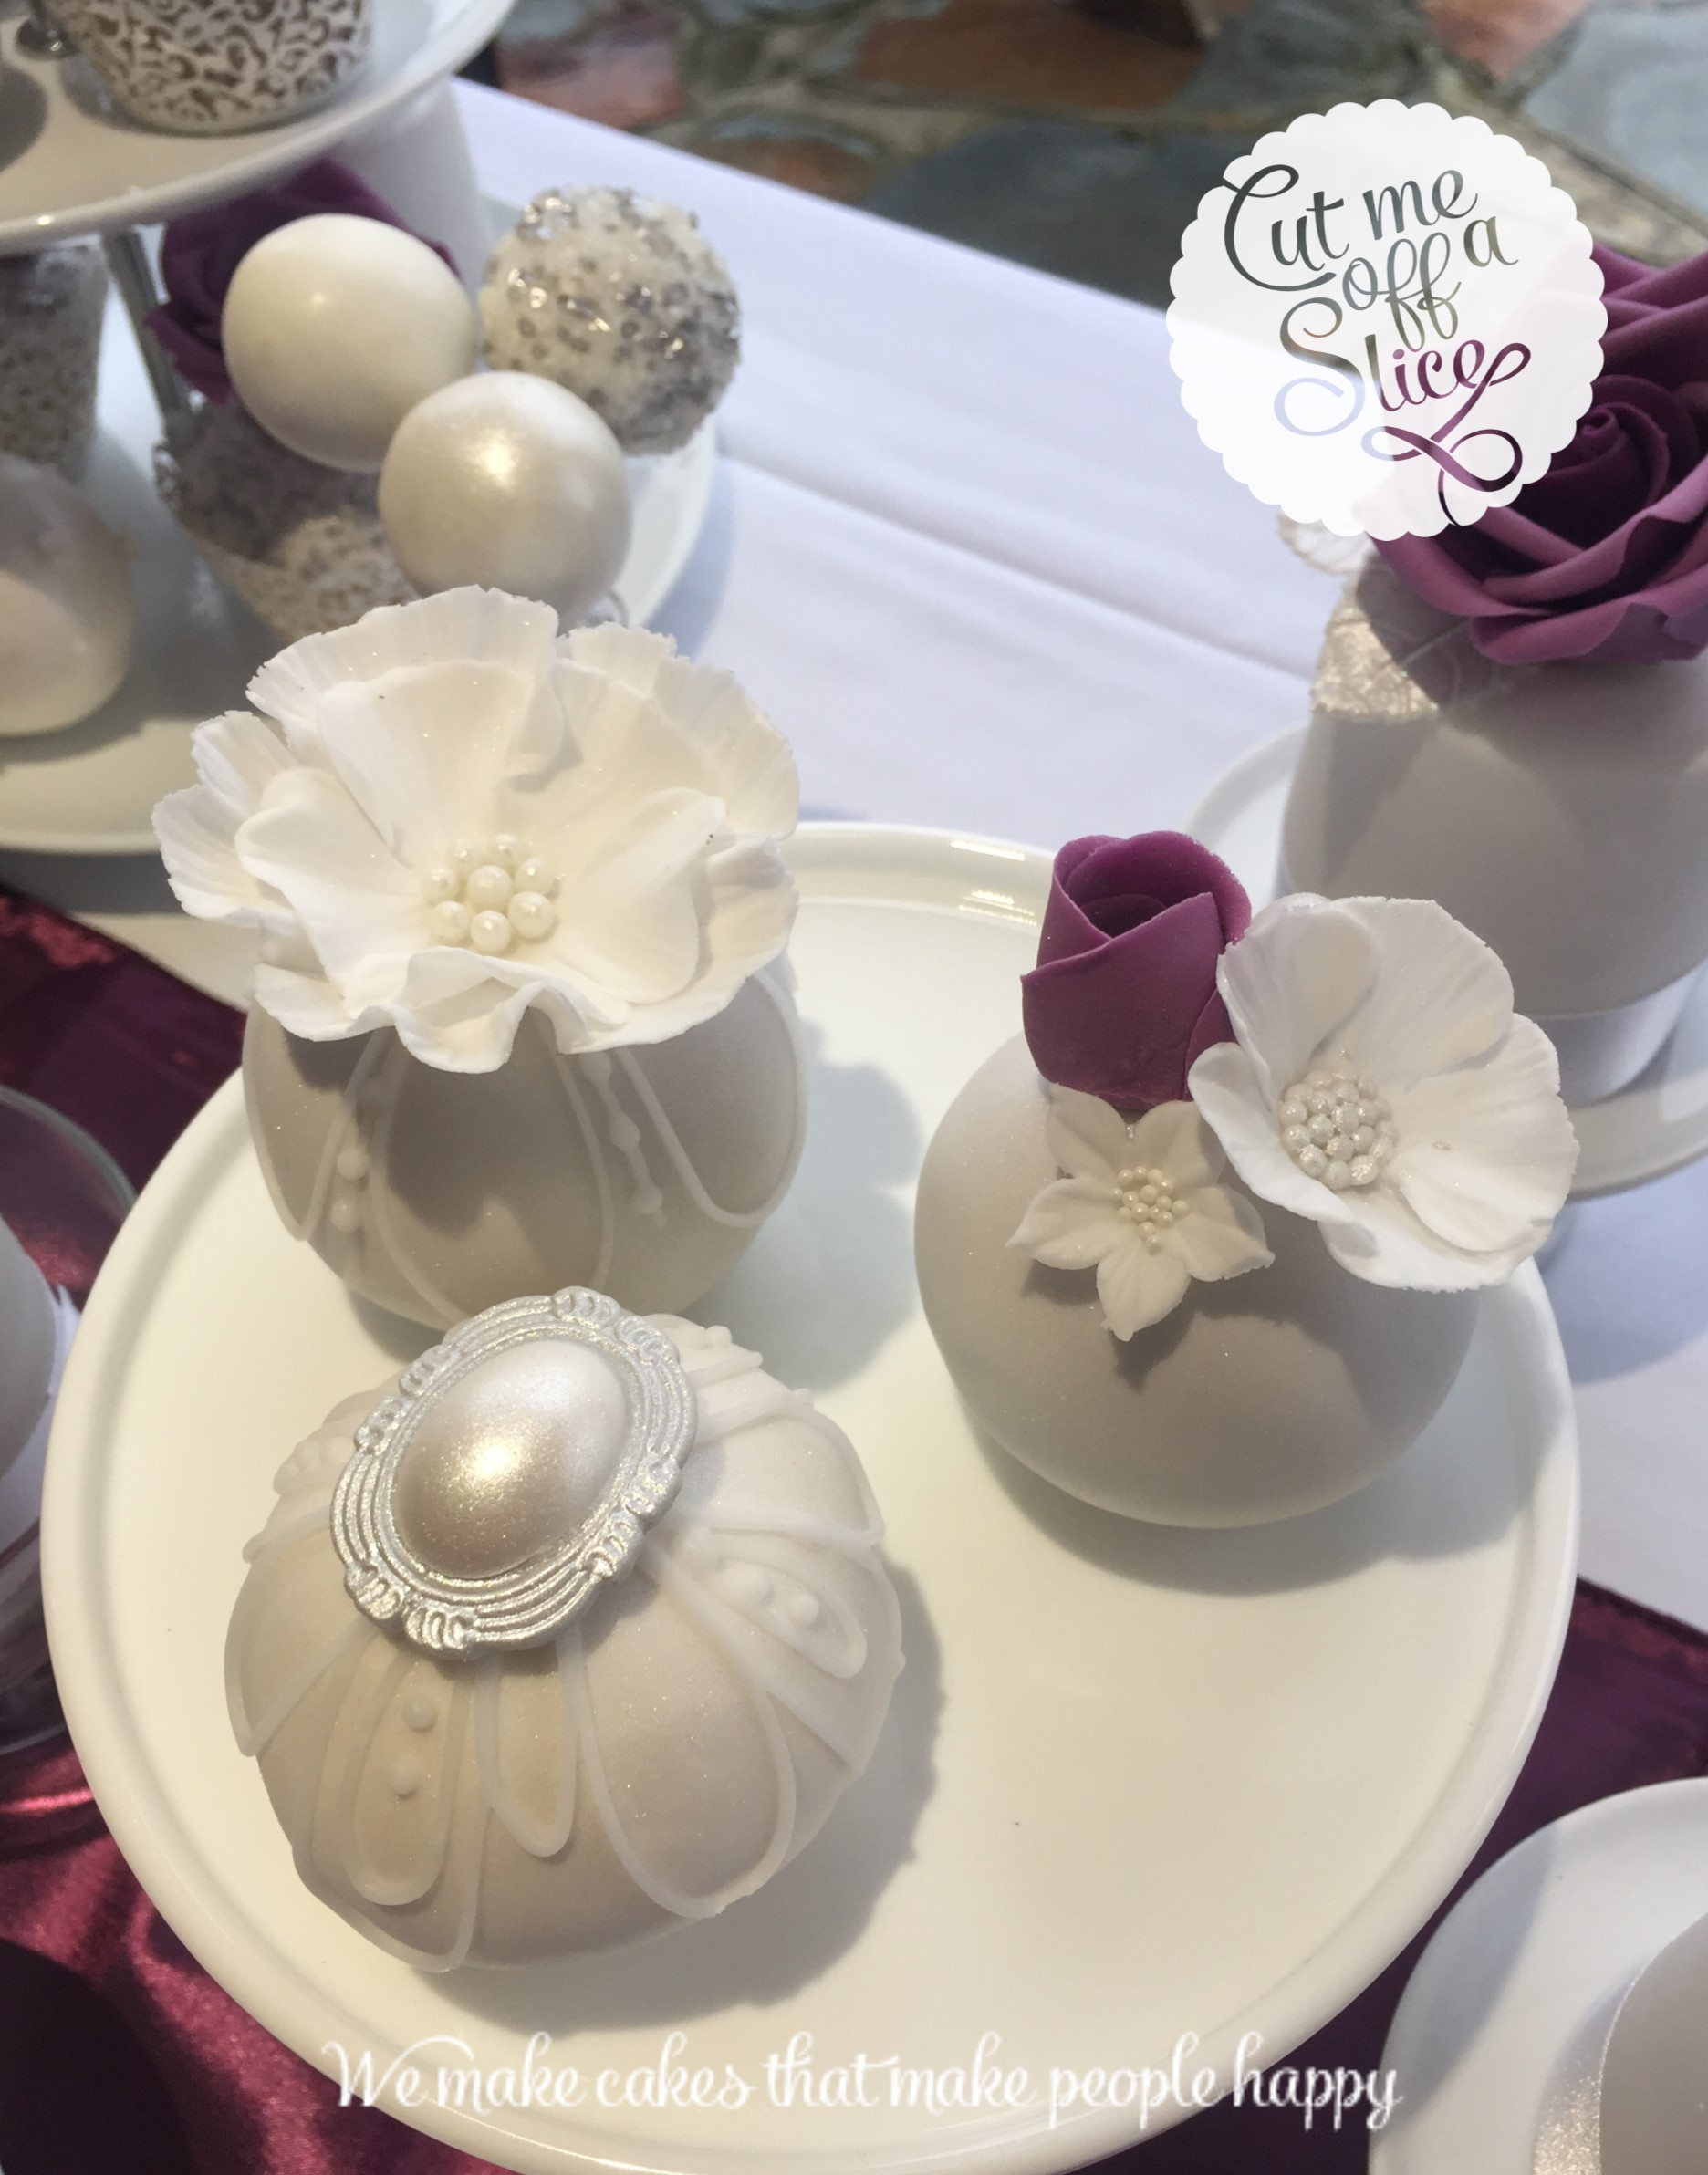 Cup Cakes - Wedding Cakes , Cut me off a slice, the cake makers for ...